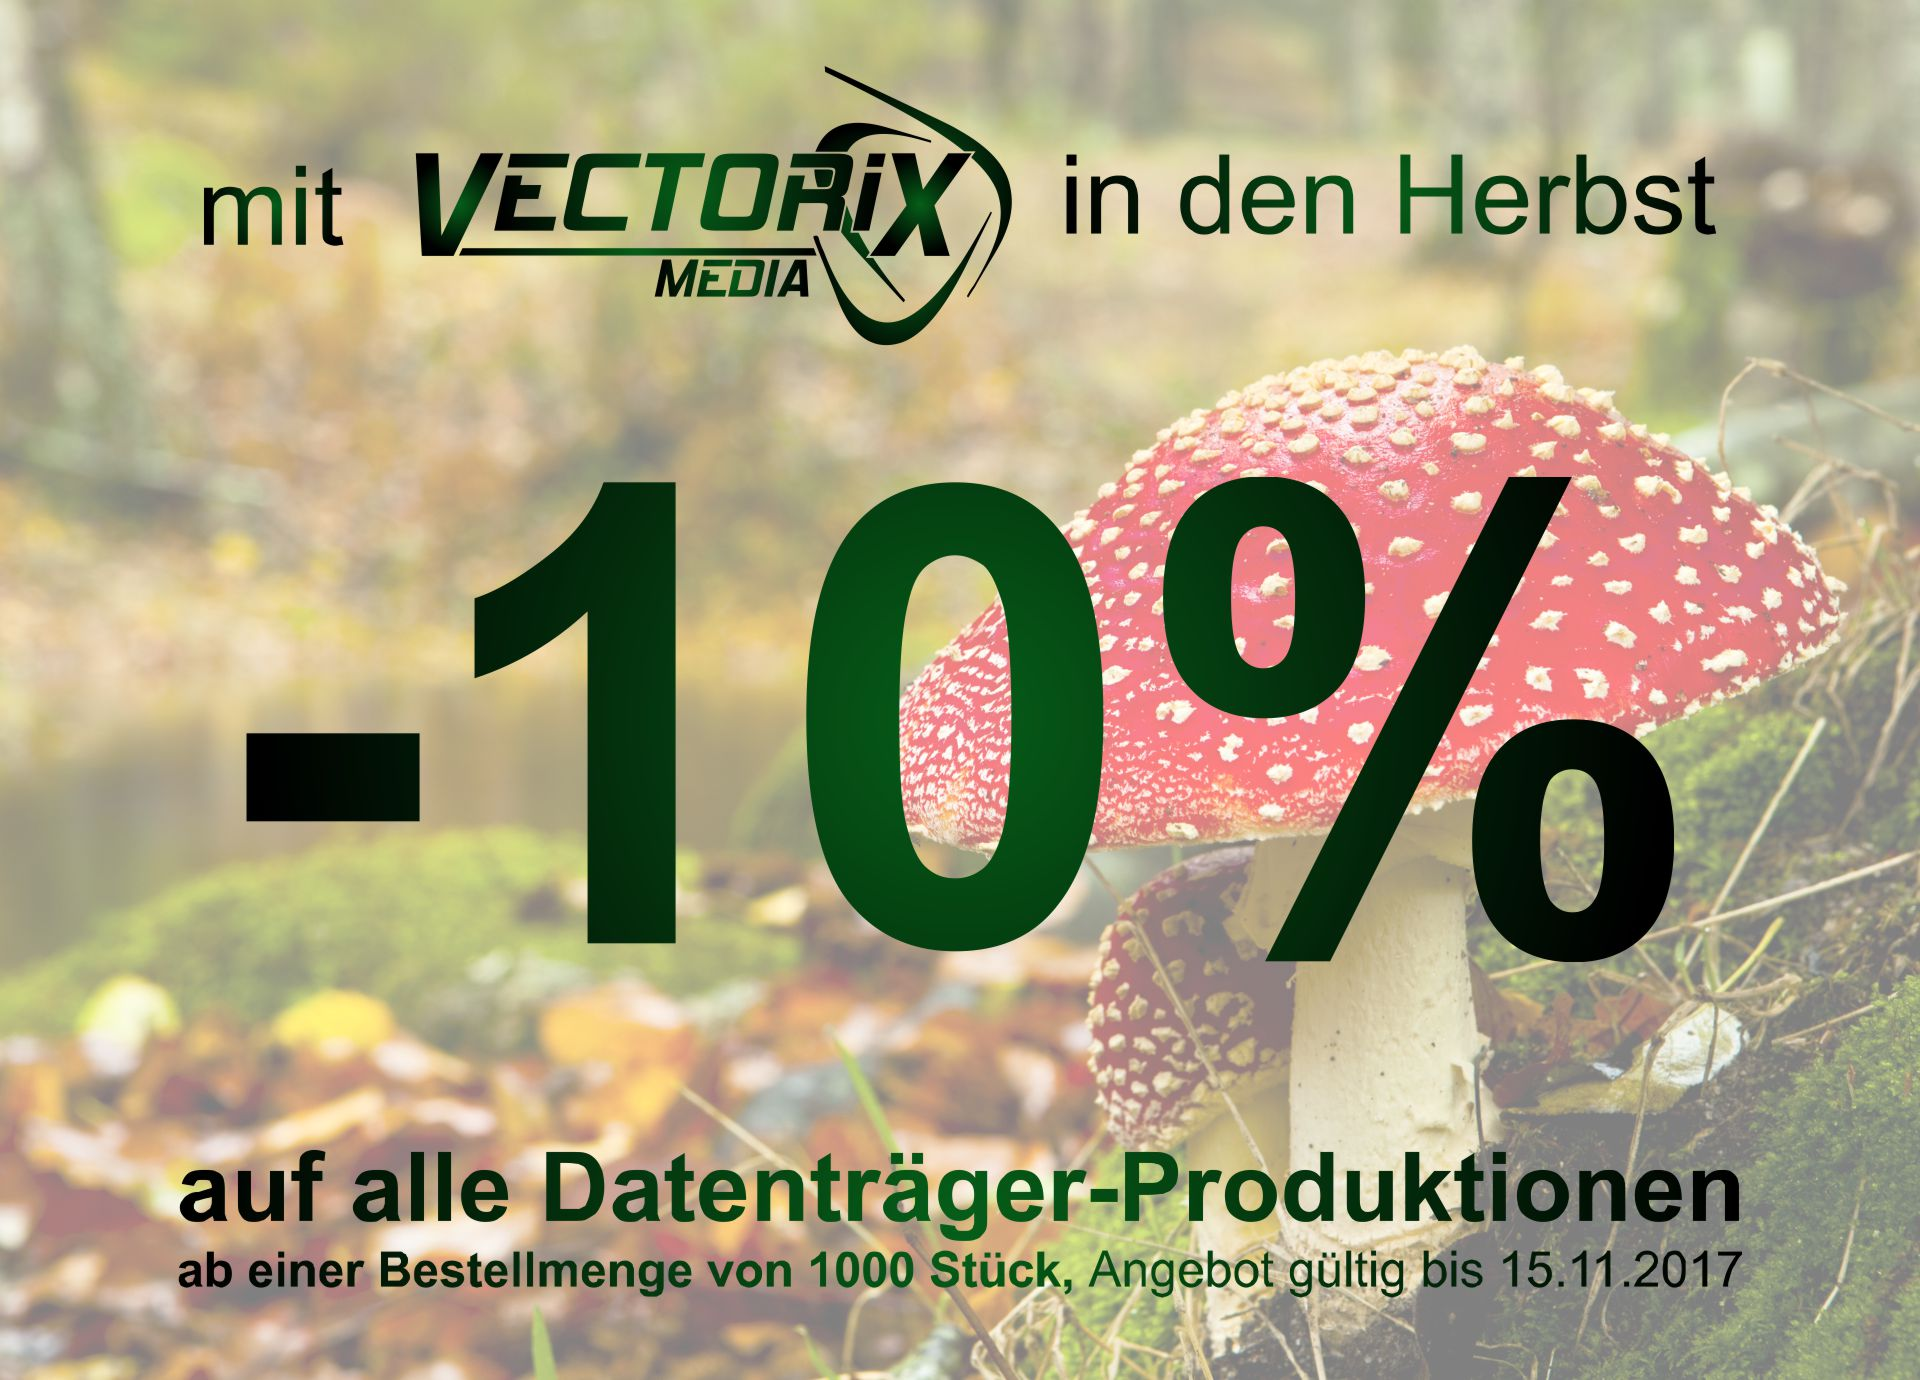 Vectorix Herbst Aktion 2017